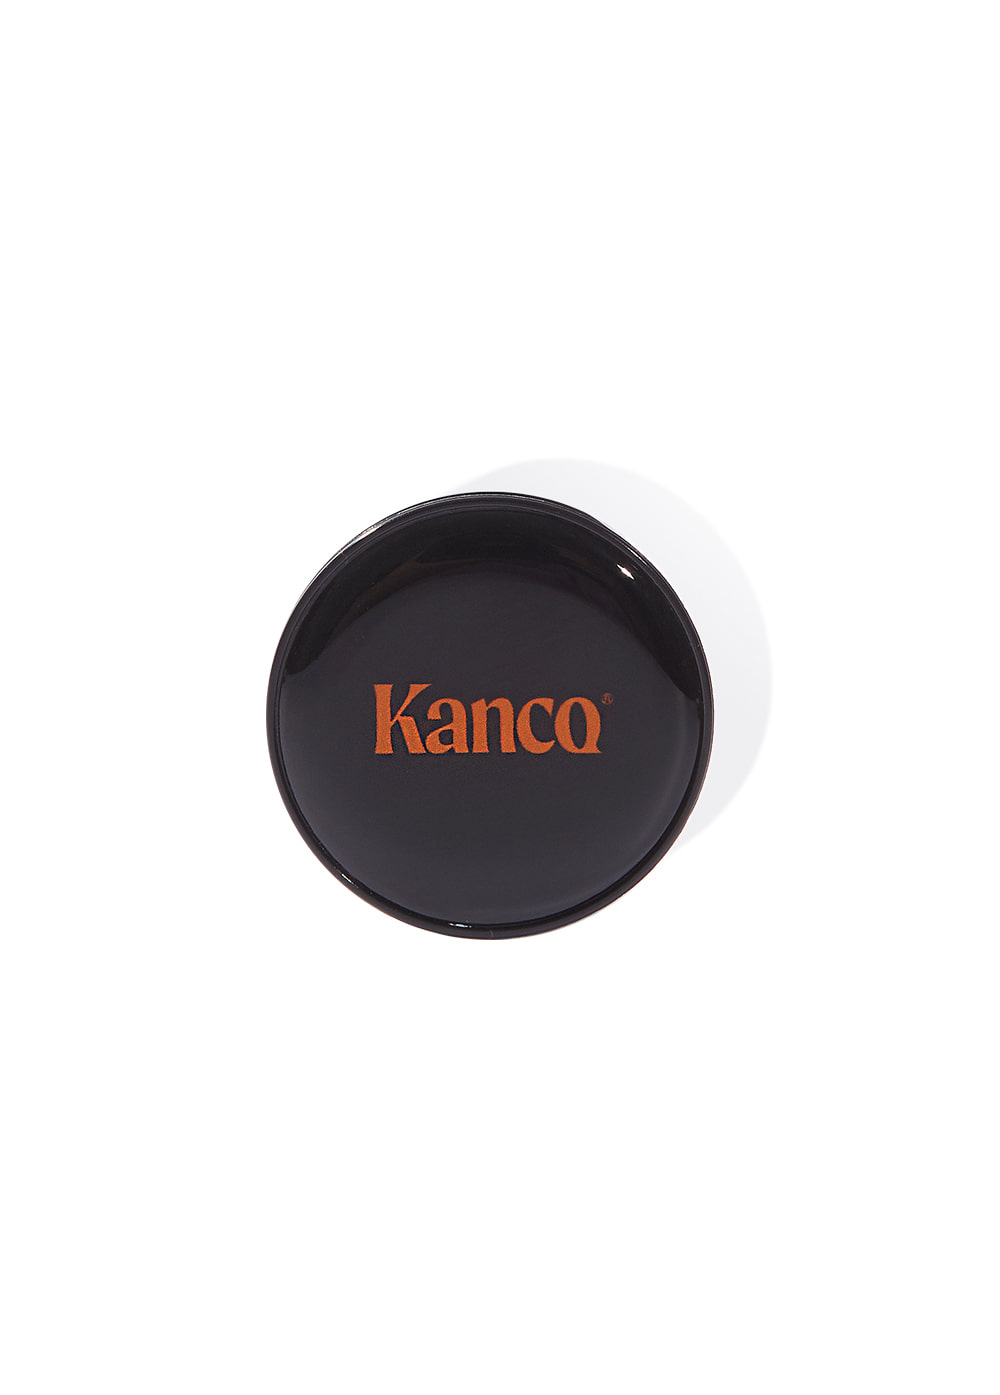 KANCO HALLOWEEN GRIPTOK black